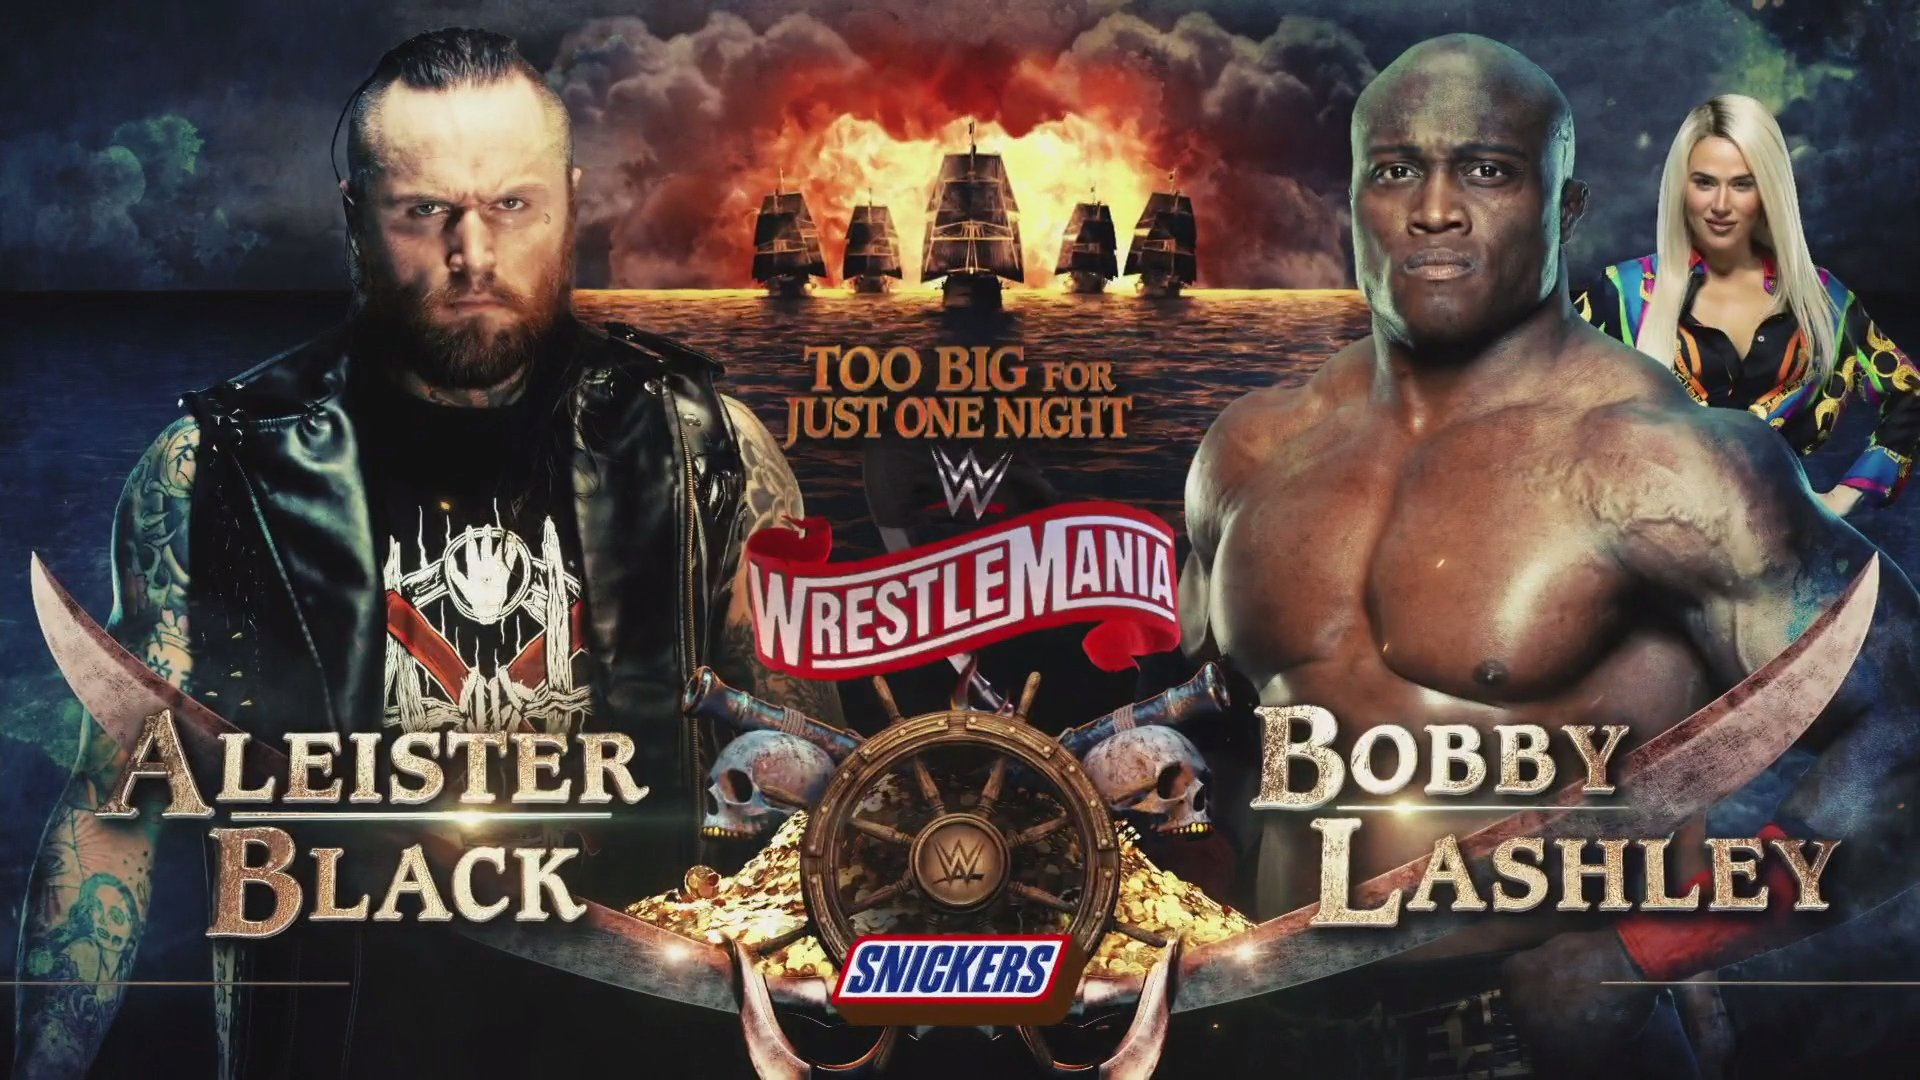 WWE Confirms Wrestlemania 36 Title Match & More; Updated Card Revealed 2